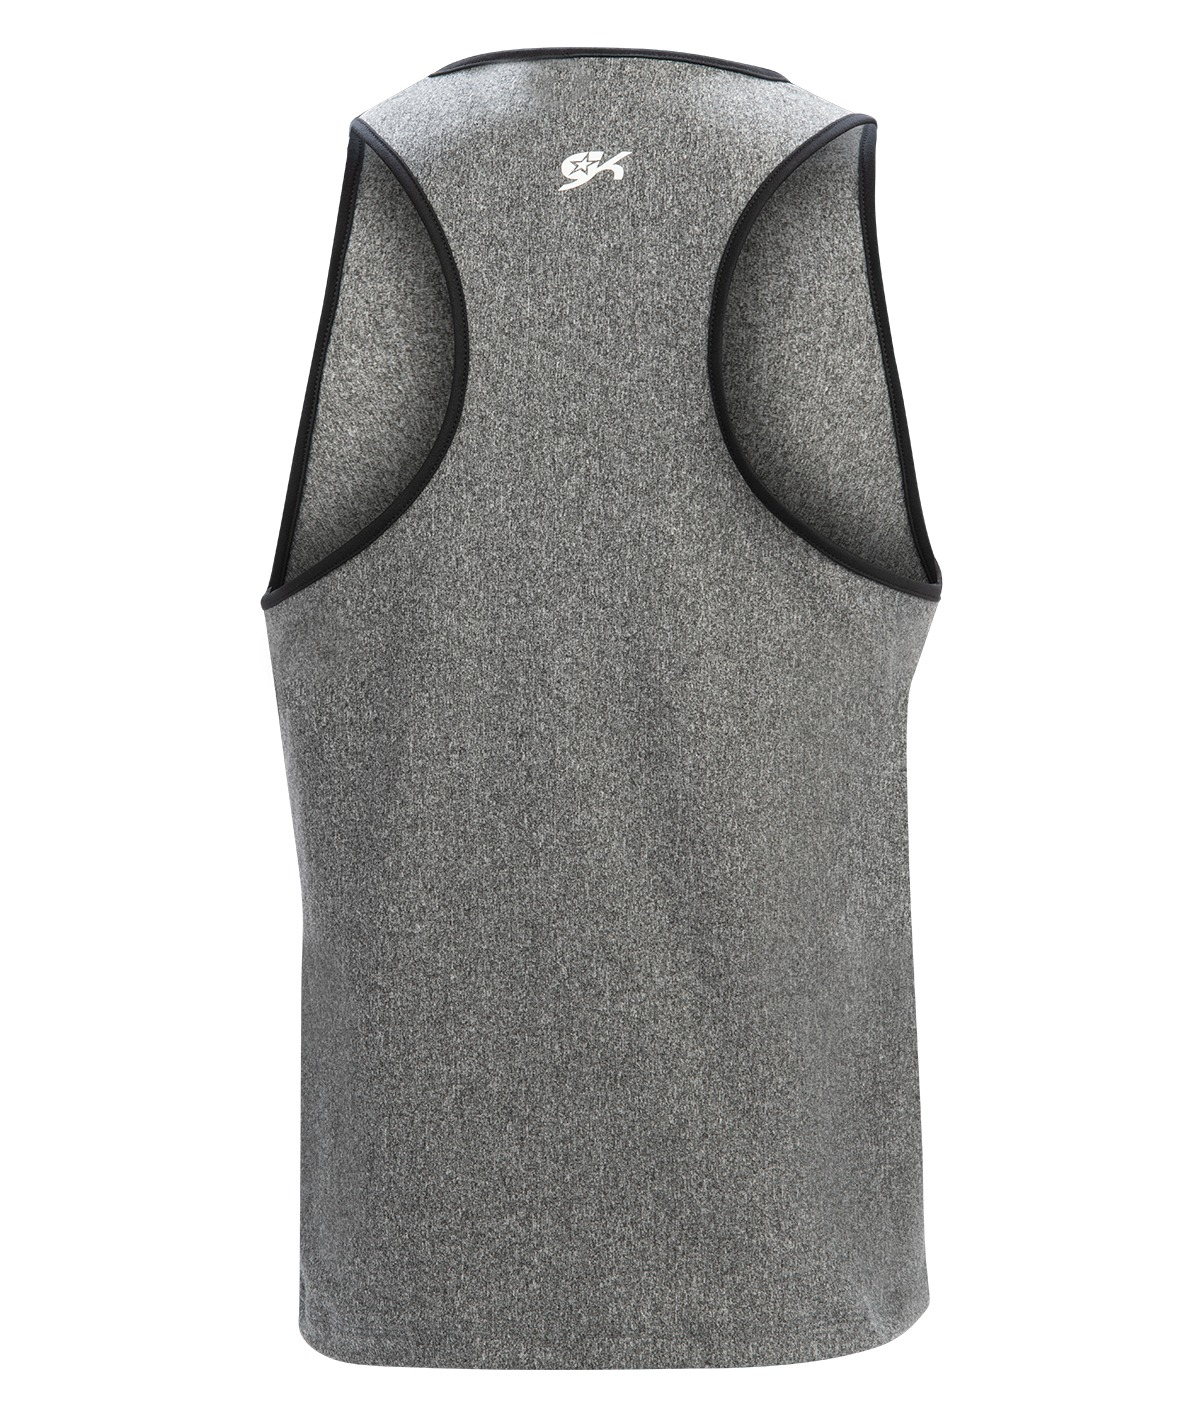 GK All Star Mens Racer Tank